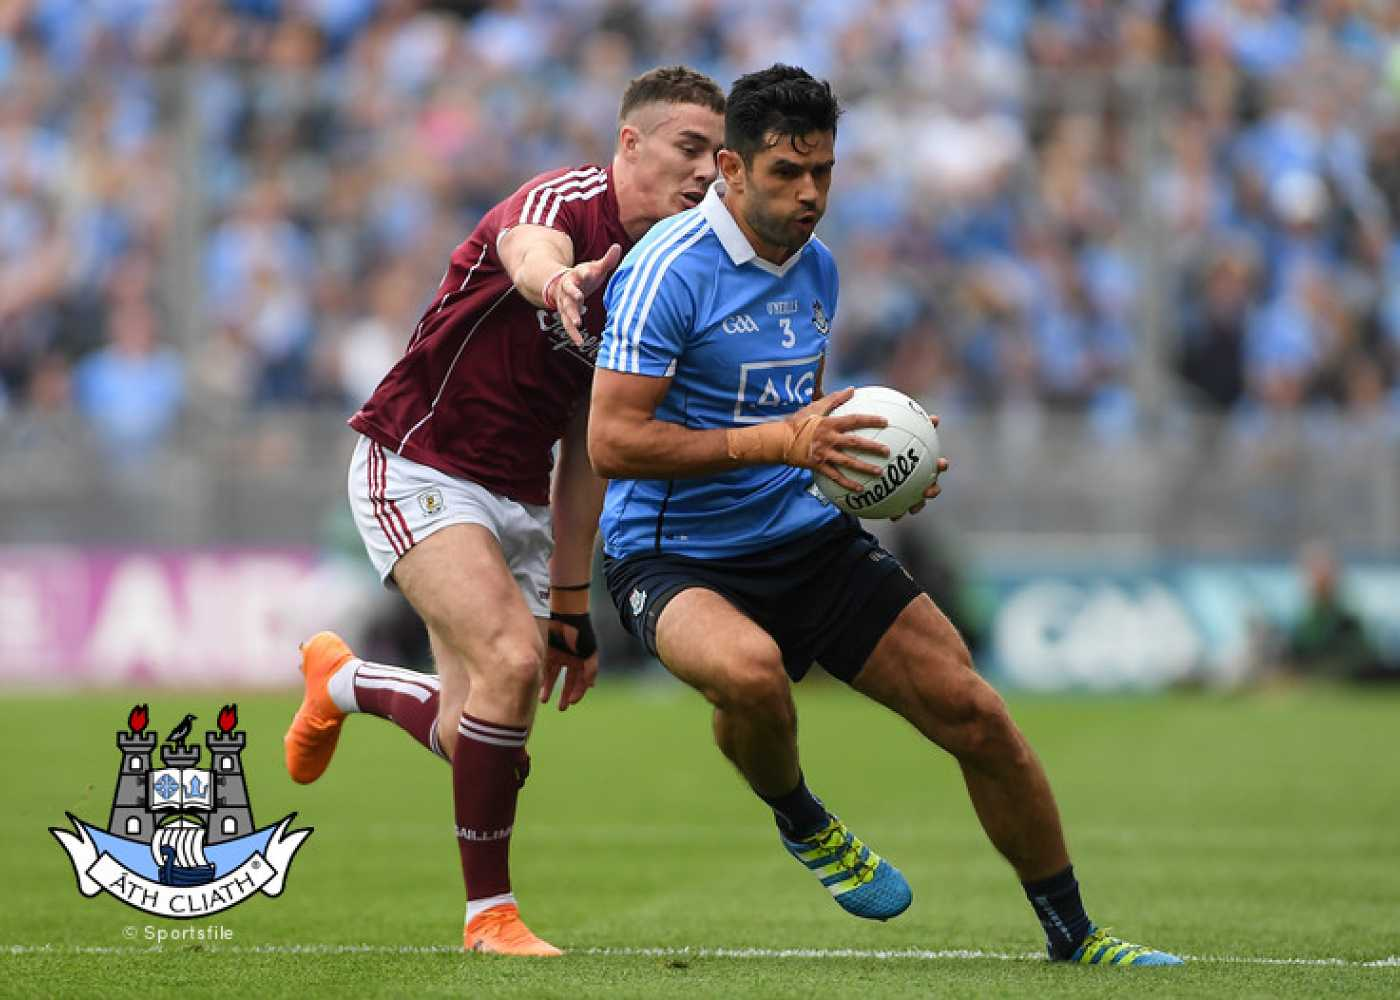 Cian will be back training next week: Jim Gavin